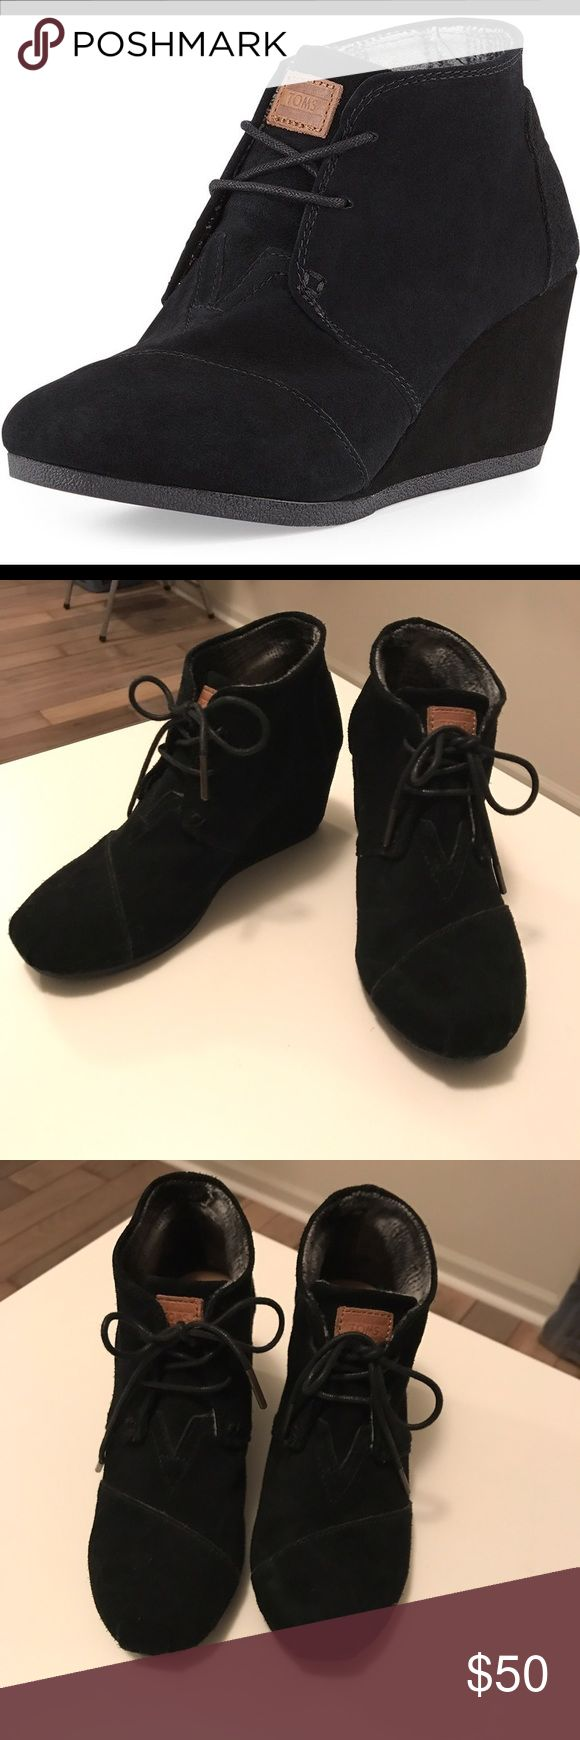 TOMS Black Desert Wedge Bootie Excellent condition. Only worn a couple of times. TOMS Desert Wedge Bootie size 7 Black TOMS Shoes Wedges